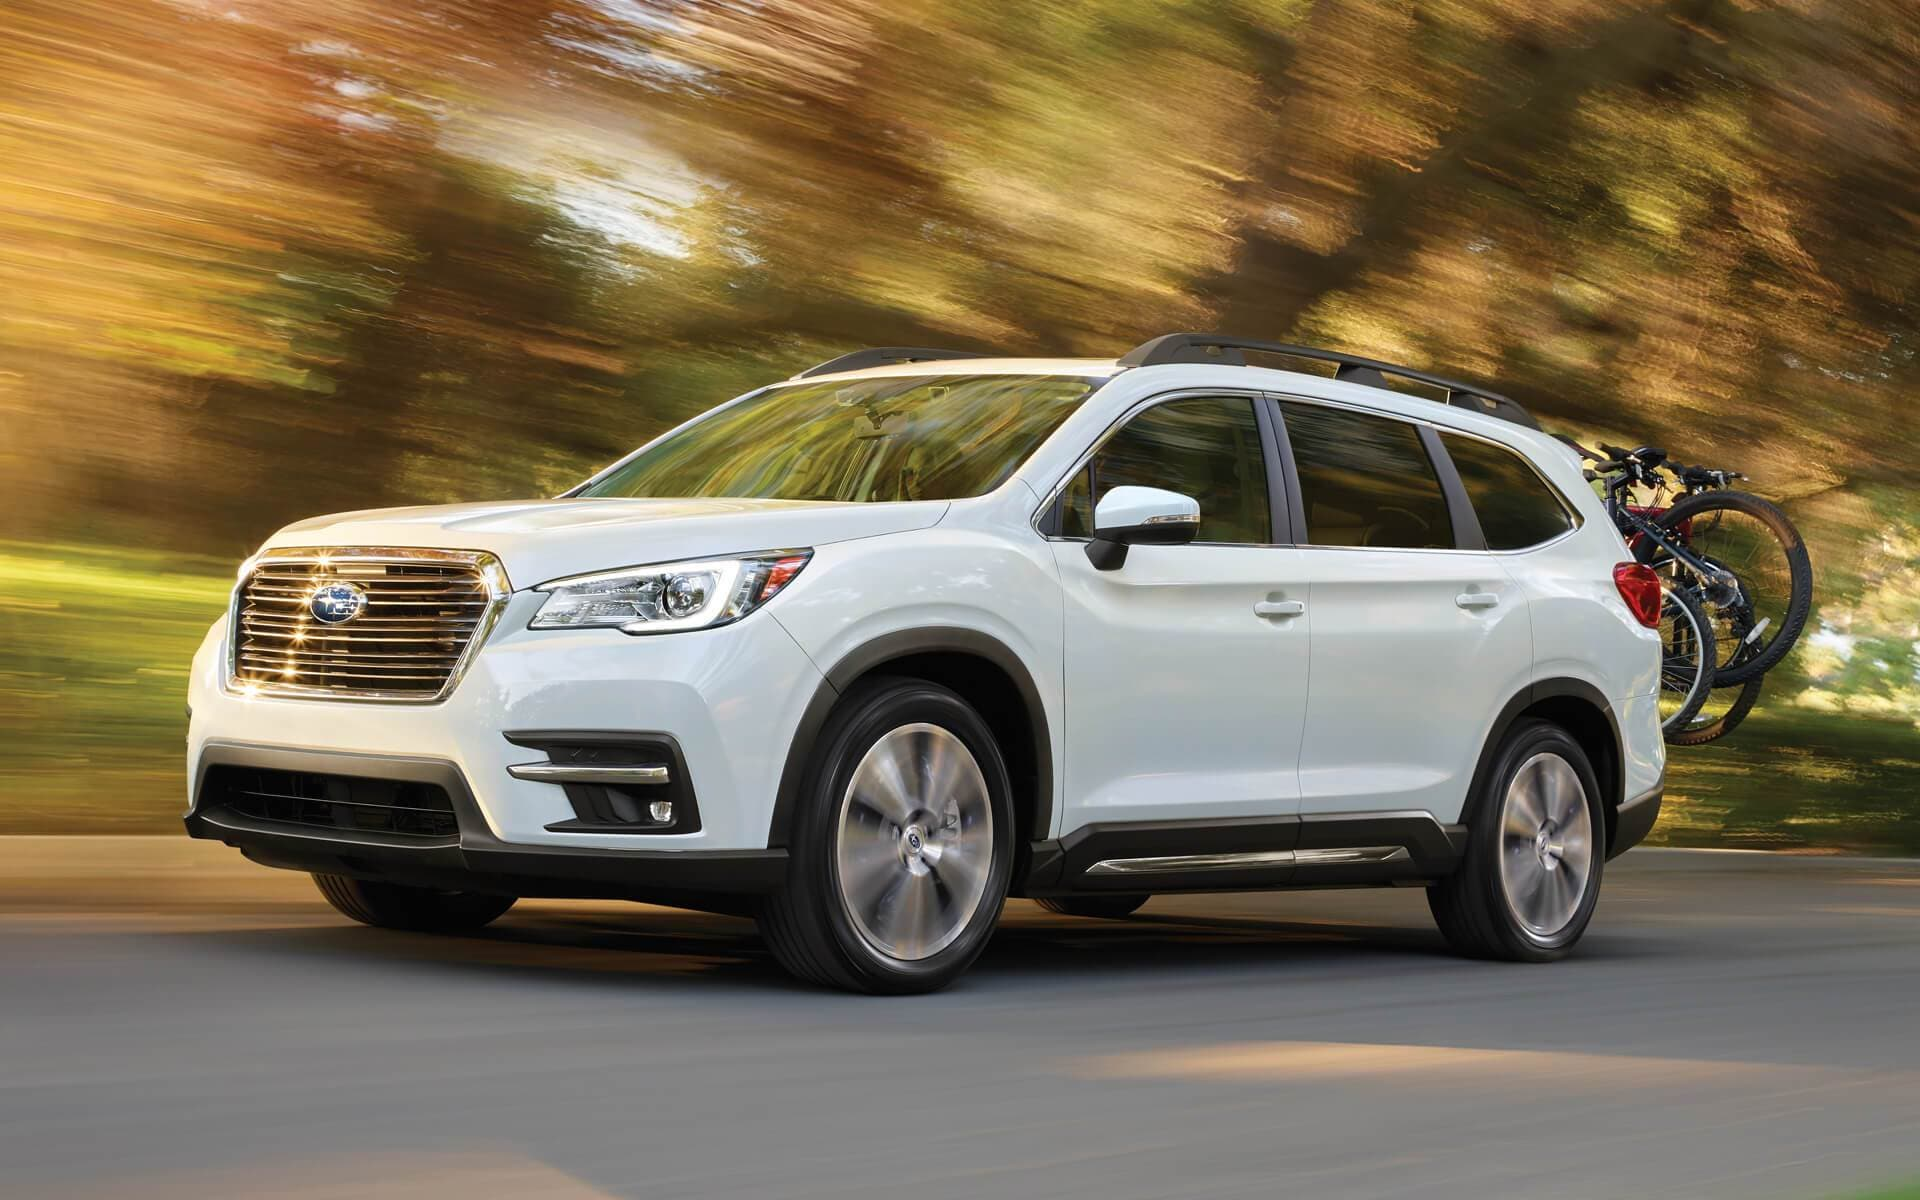 10. Subaru Ascent: Talk about a nice rookie outing. This 3-row SUV is new, so it's a big surprise to see it make this list. But Consumer Reports said the vehicle is smooth and efficient with a comfortable and functional interior. Prices starting at $43,867.